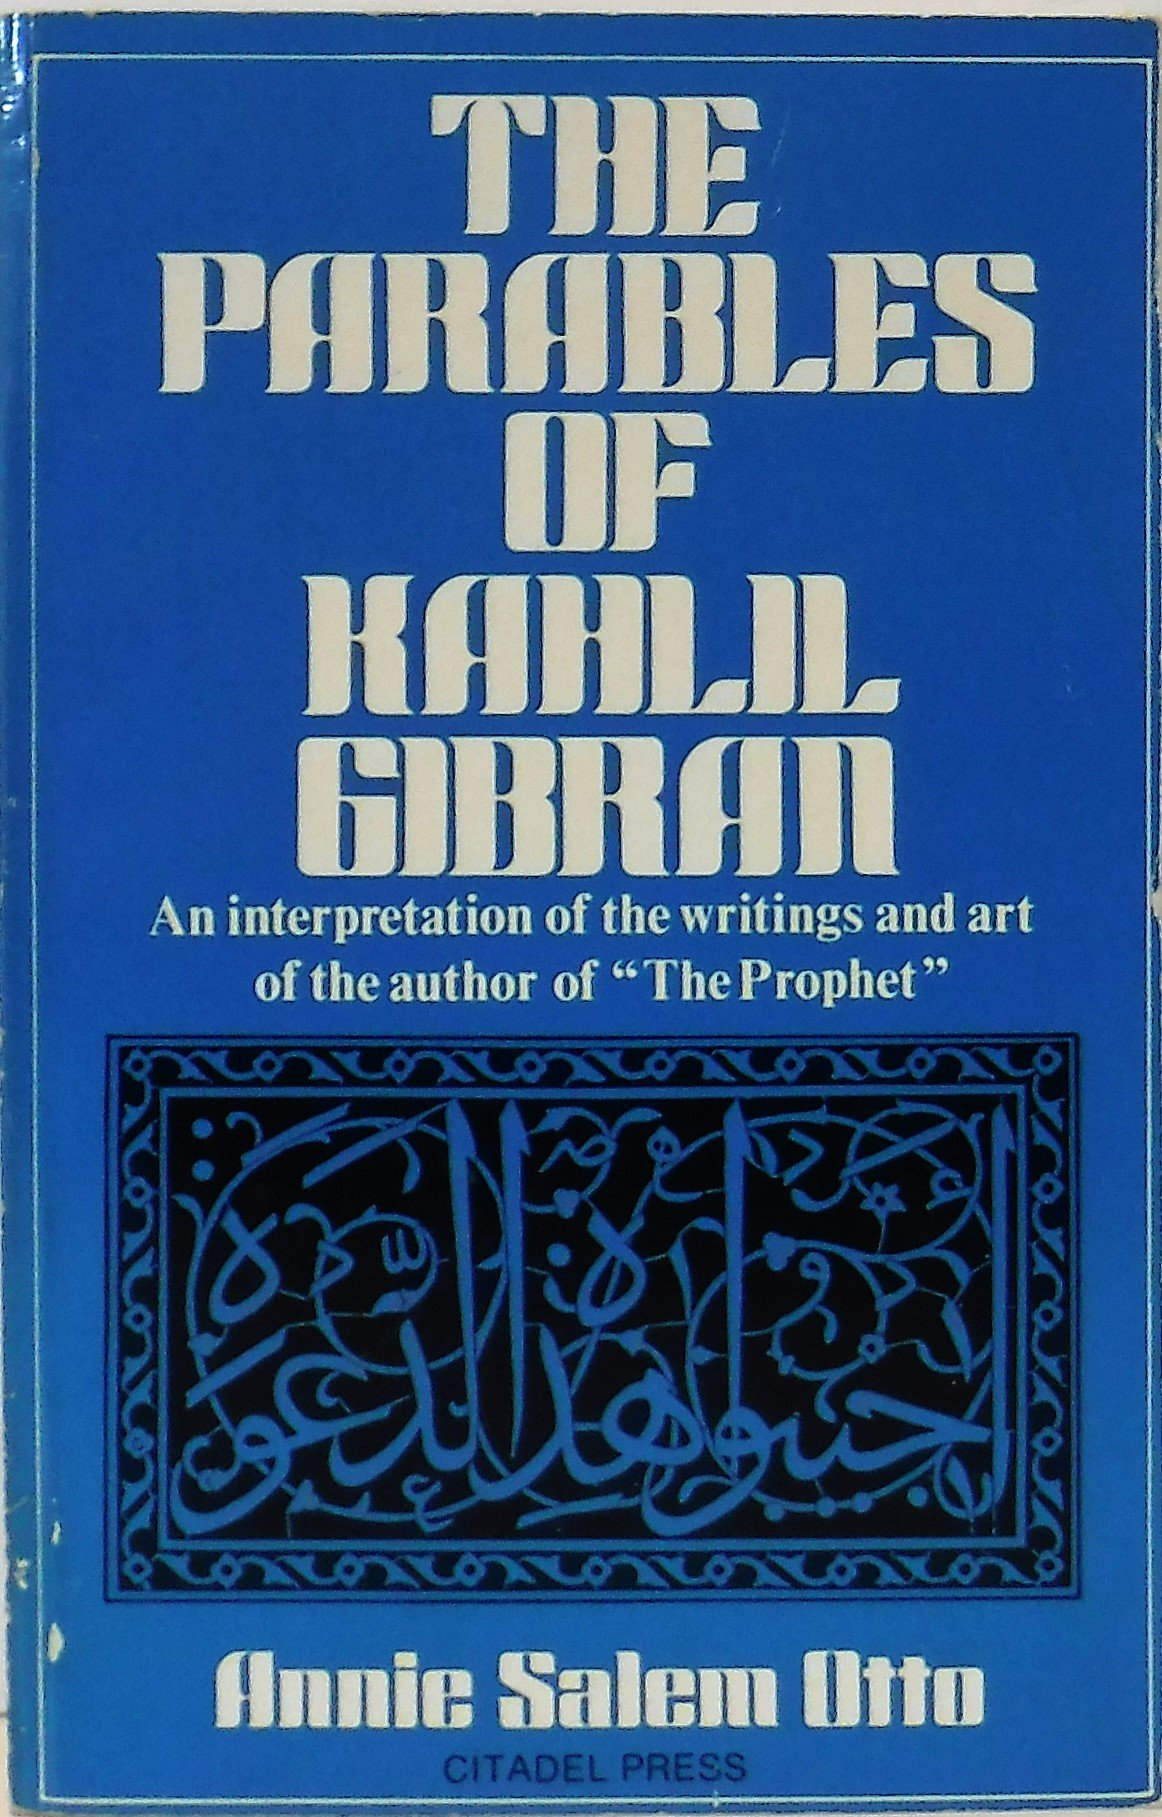 Annie Salem Otto, The Parables of Kahlil Gibran: An Interpretation of His Writings and His Art, Secaucus, New Jersey: Citadel Press, 1981.